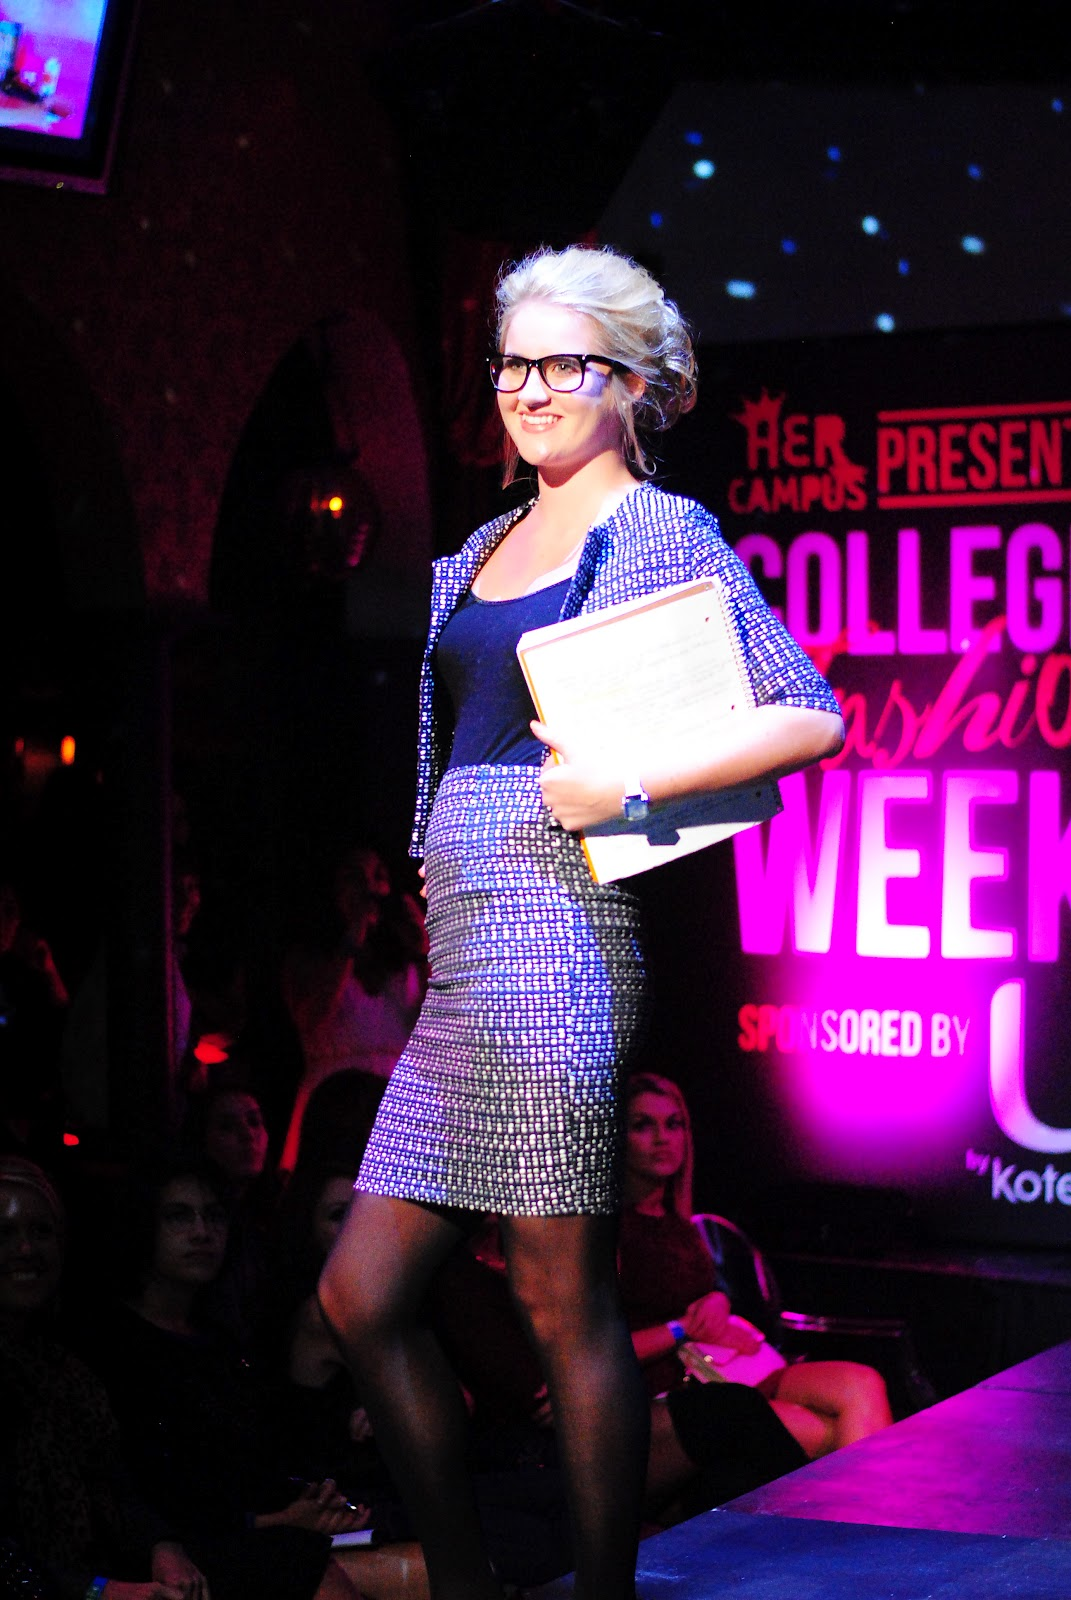 Her Campus' first national College Fashion Week that took place at The Estate in downtown Boston last night. Sponsored by U by Kotex, NYX Cosmetics, Luna Bar and Svelte, all the attendants received a nice gift bag, free feminine care products by U by Kotex and complimentary Pinkberry and candy.